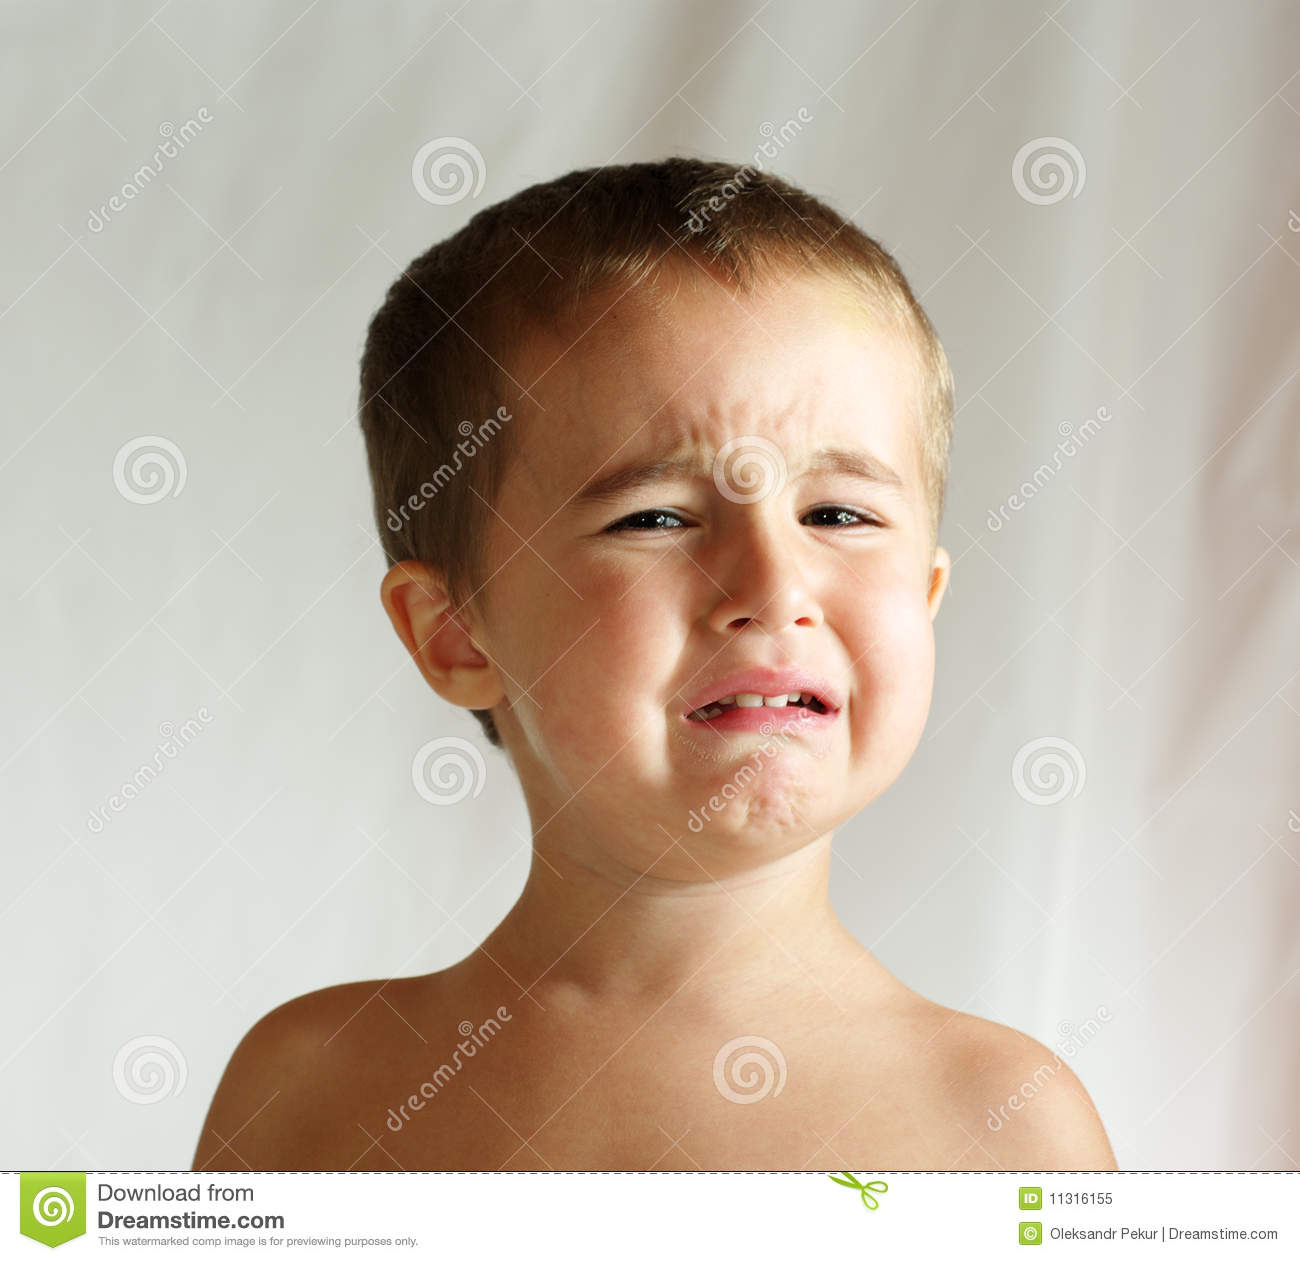 crying-boy-11316155.jpg